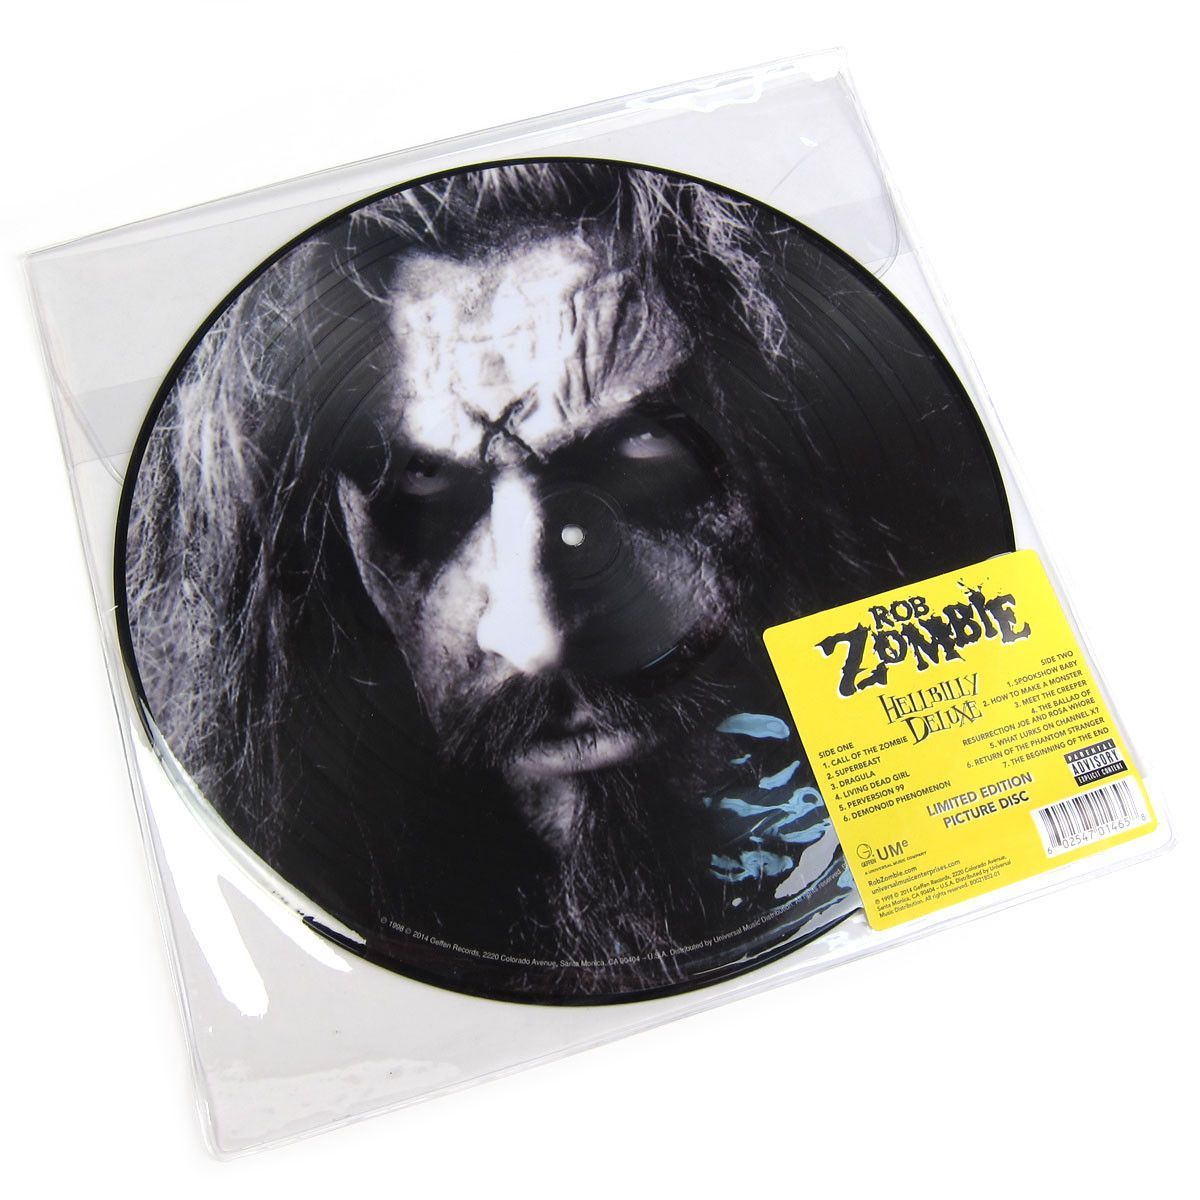 Rob Zombie Hellbilly Deluxe Limited Edition Picture Disc Vinyl Lp Rob Zombie Zombie White Zombie